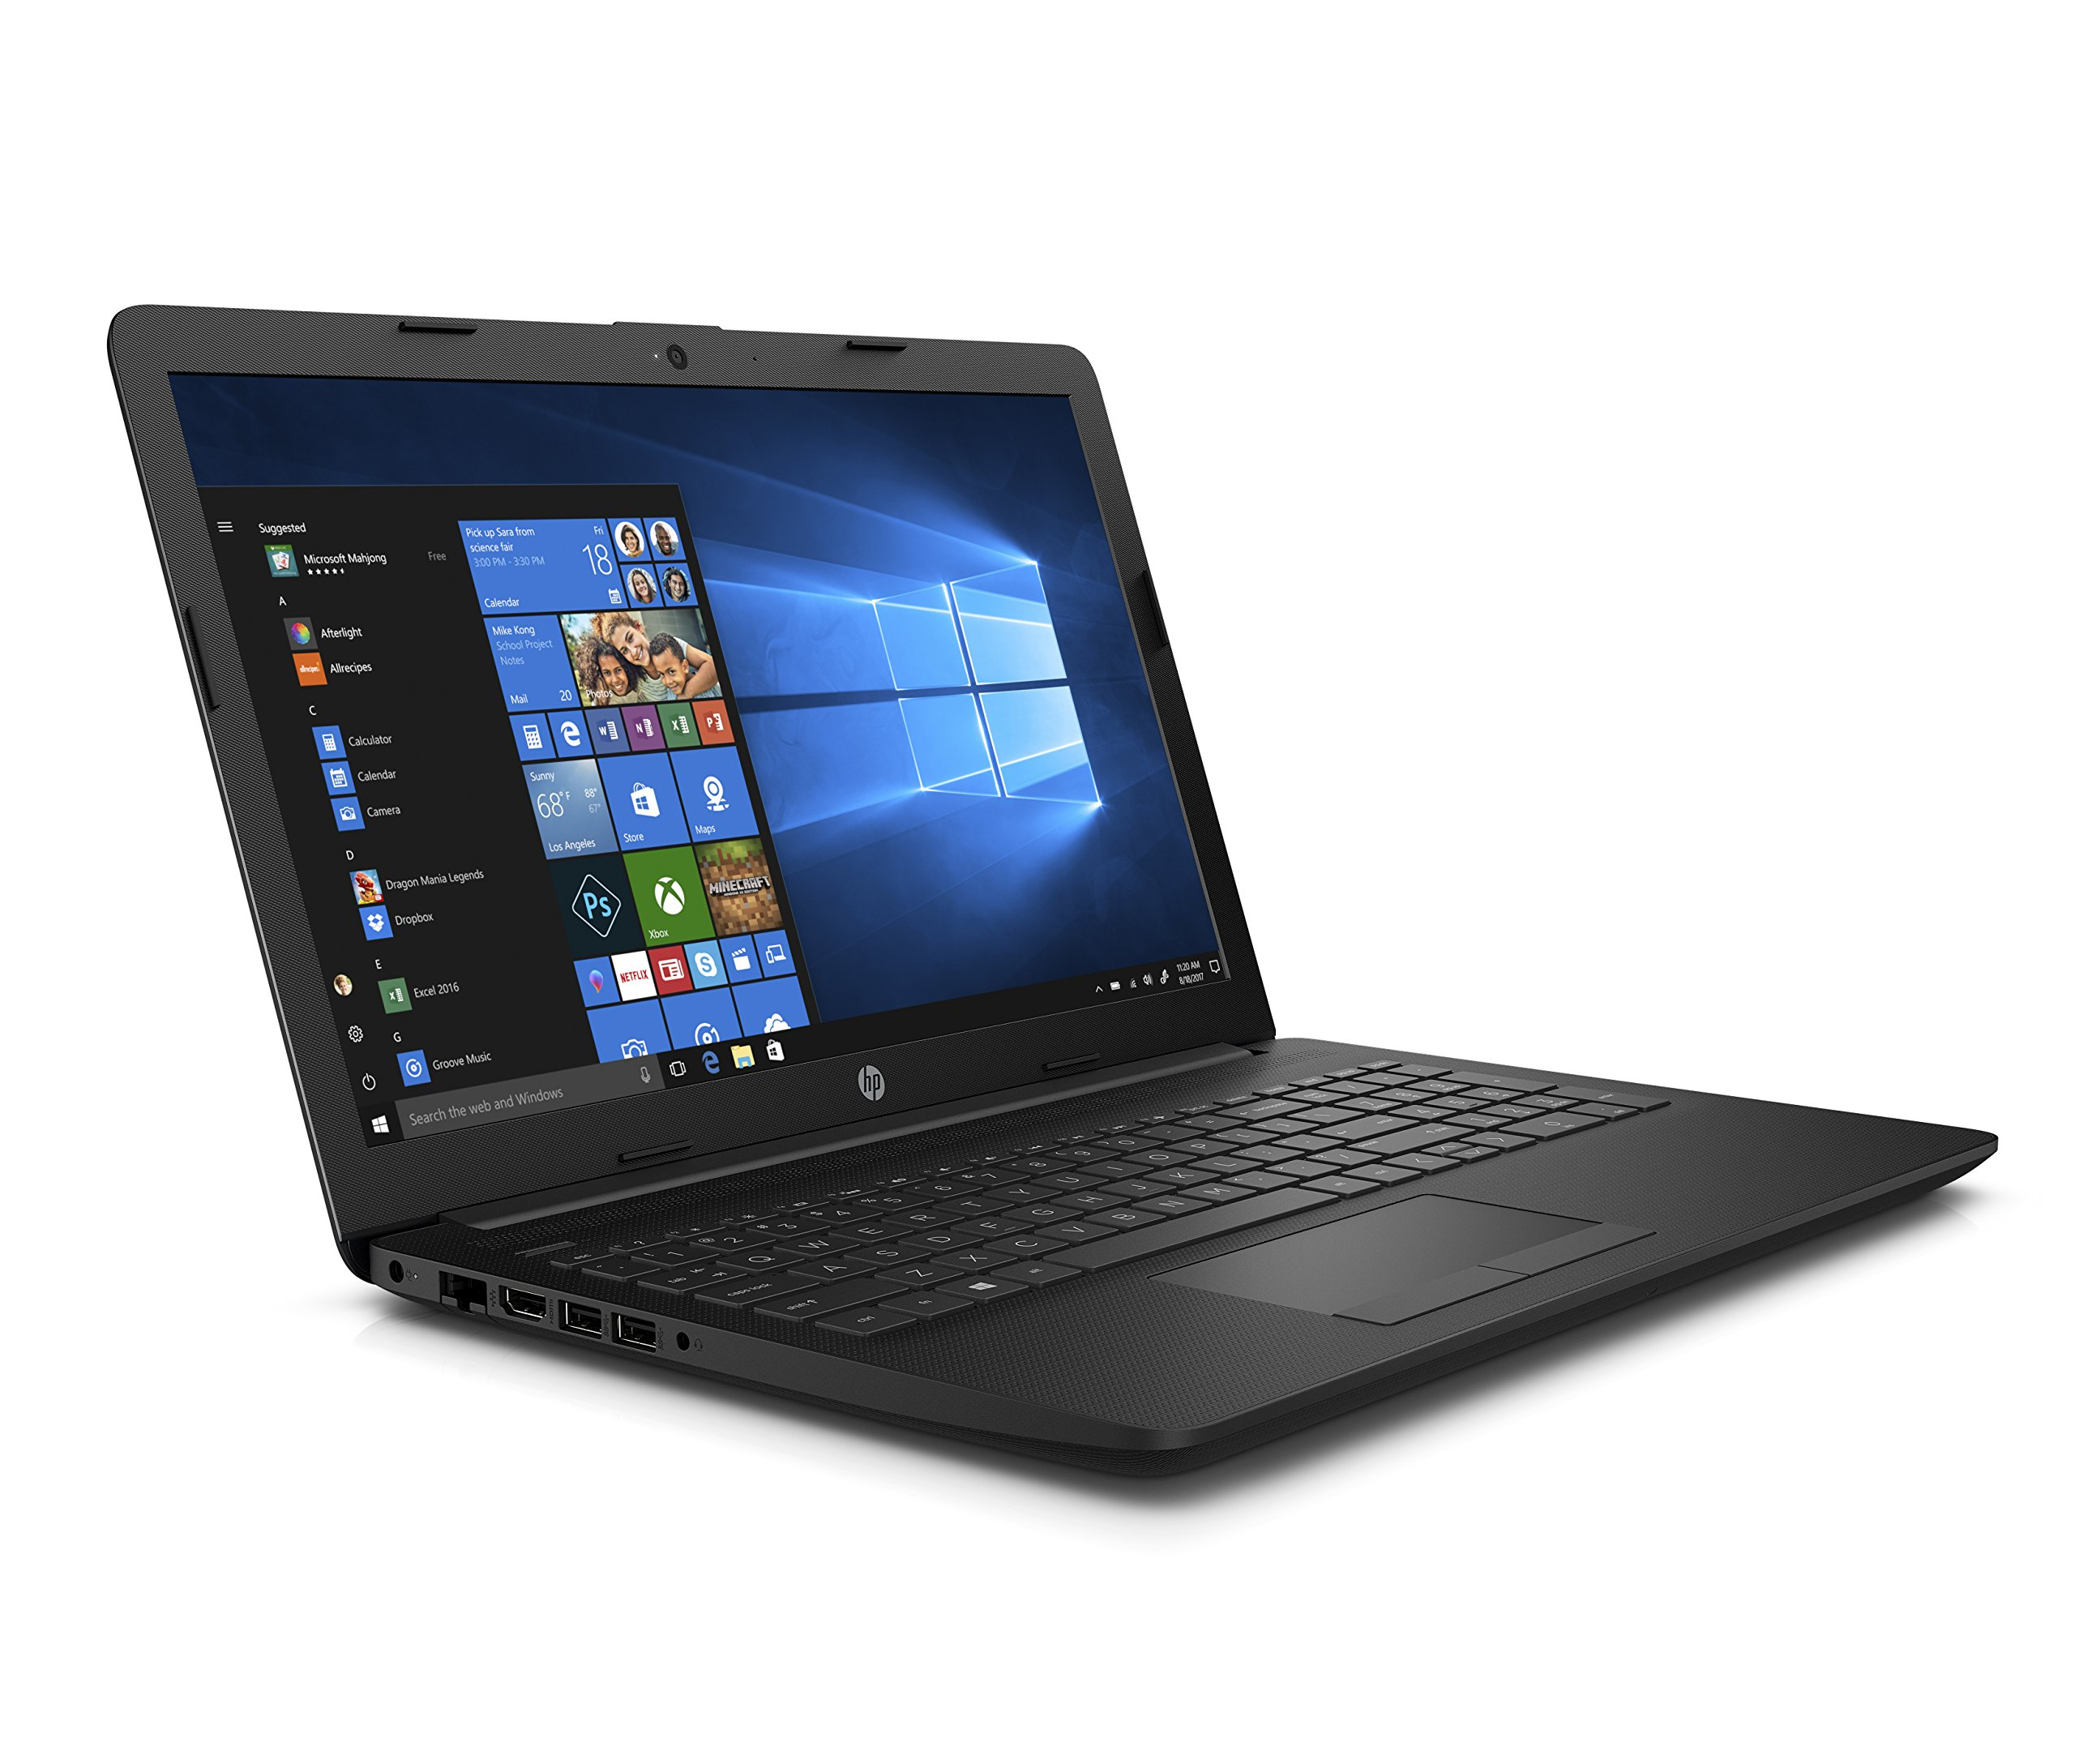 Hp 15 Db0043na 15 6 Inch Fhd Laptop Black Amd A4 9125 4 Gb Ram 1 Tb Hdd Amd Radeon R3 Graphics Windows 10 Home Buy Online In Dominican Republic Hpamdamd Products